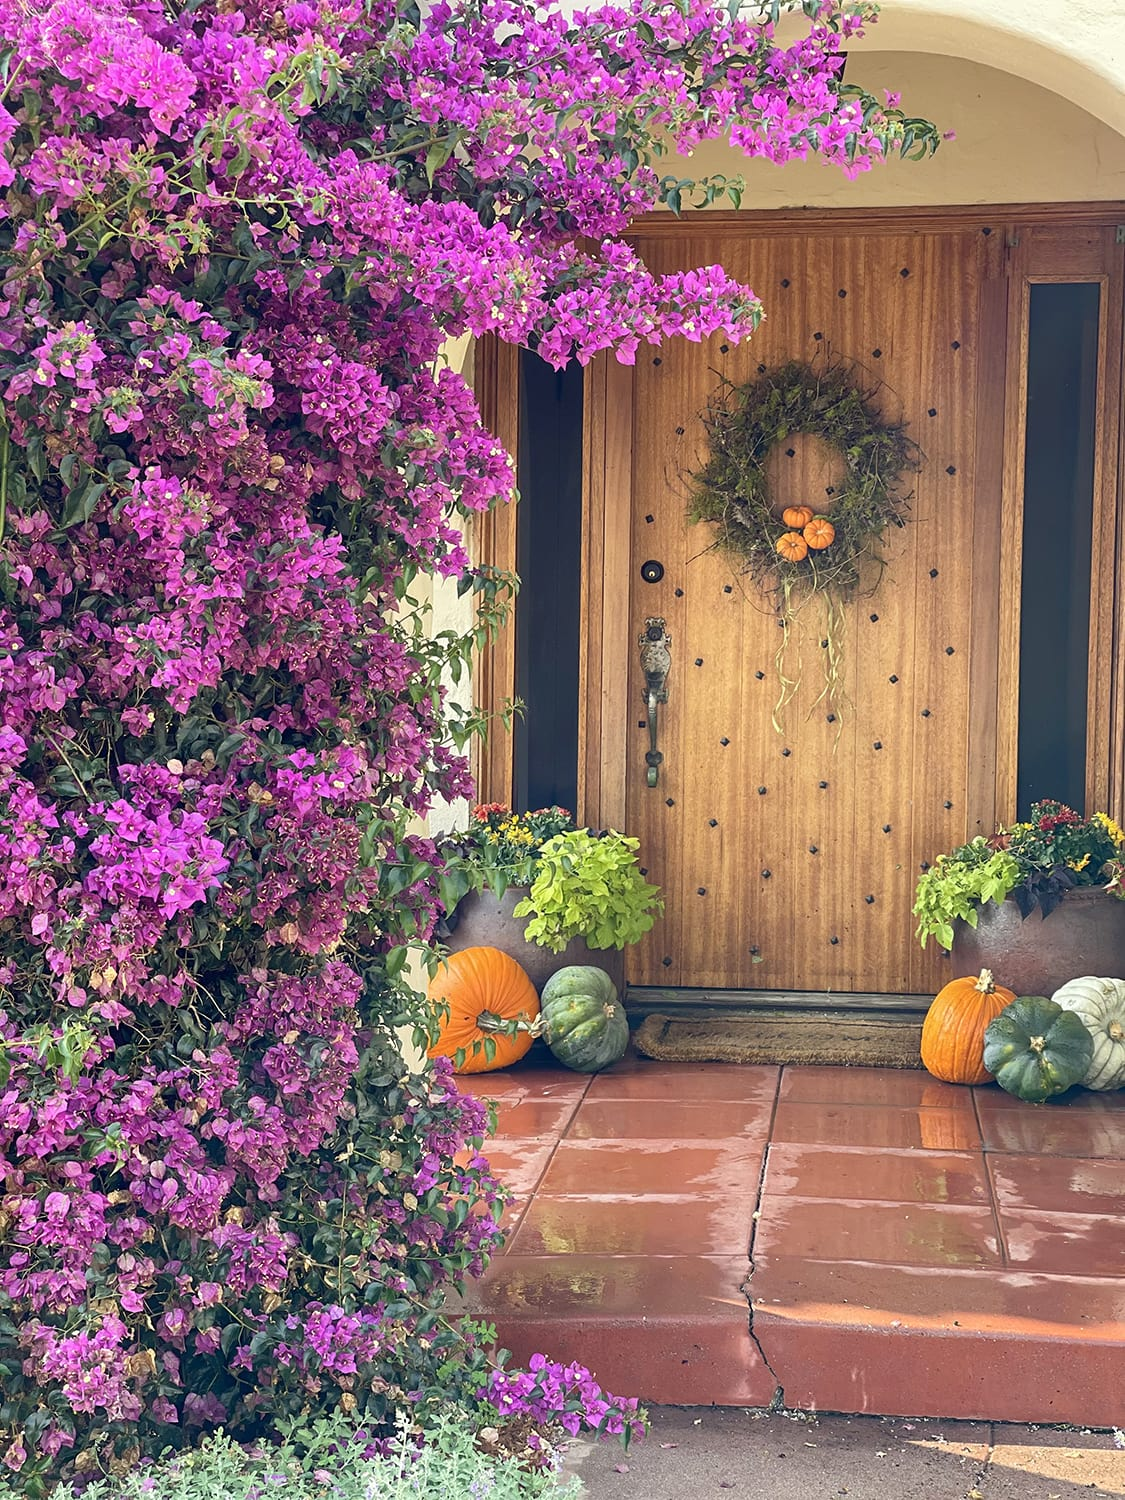 Cindy Hattersley's Porch with bouganvilla